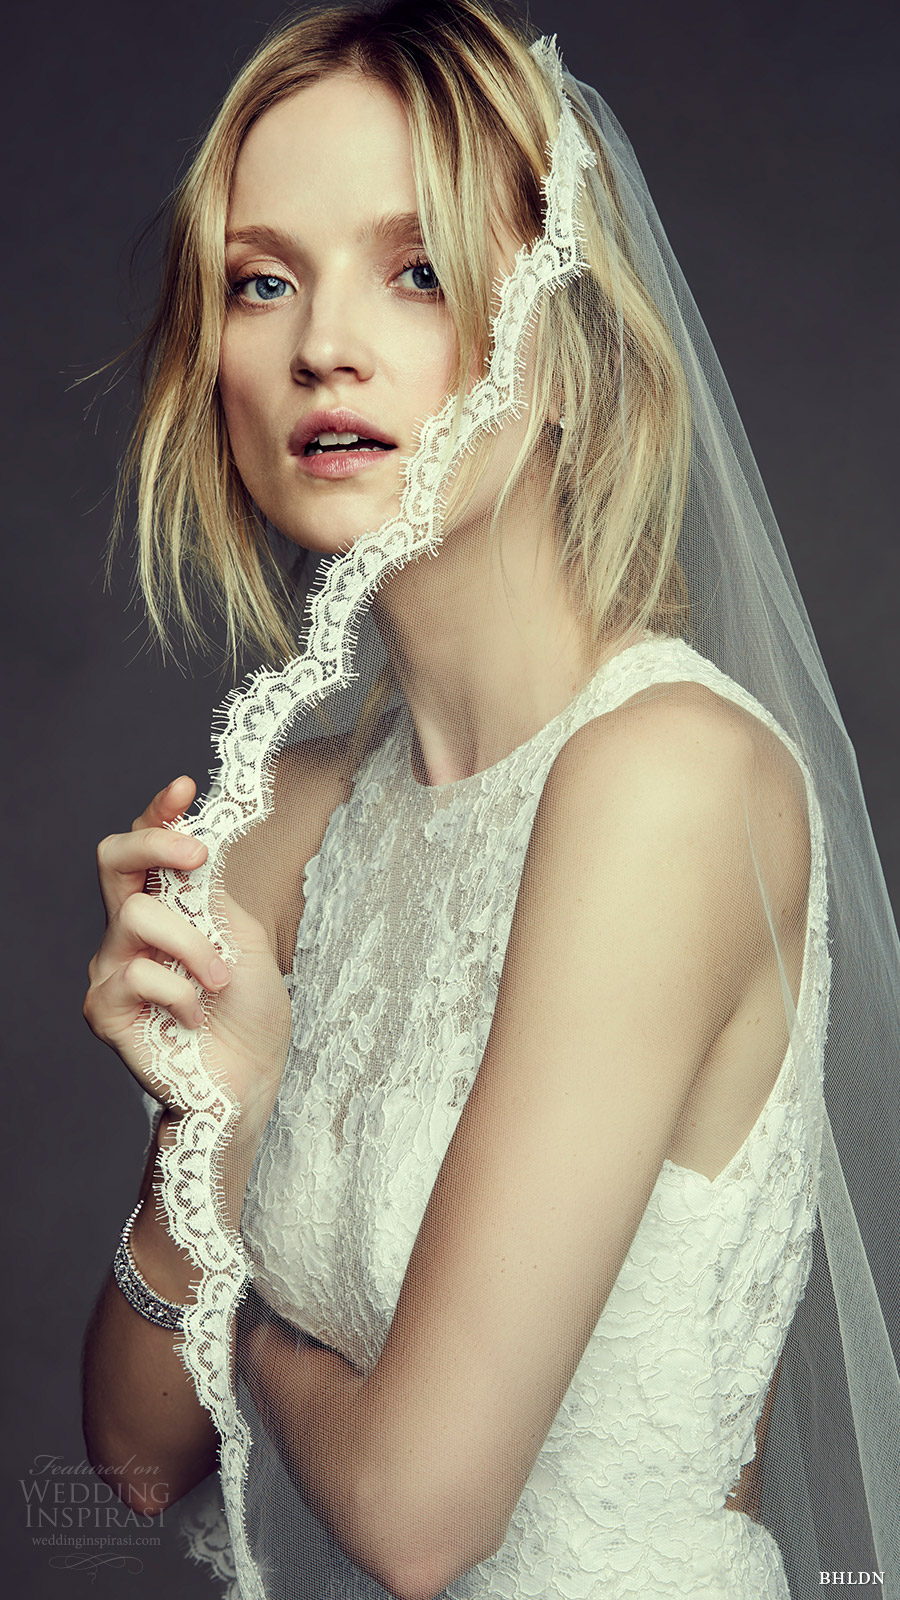 bhldn bridal may 2016 adeline lace veil